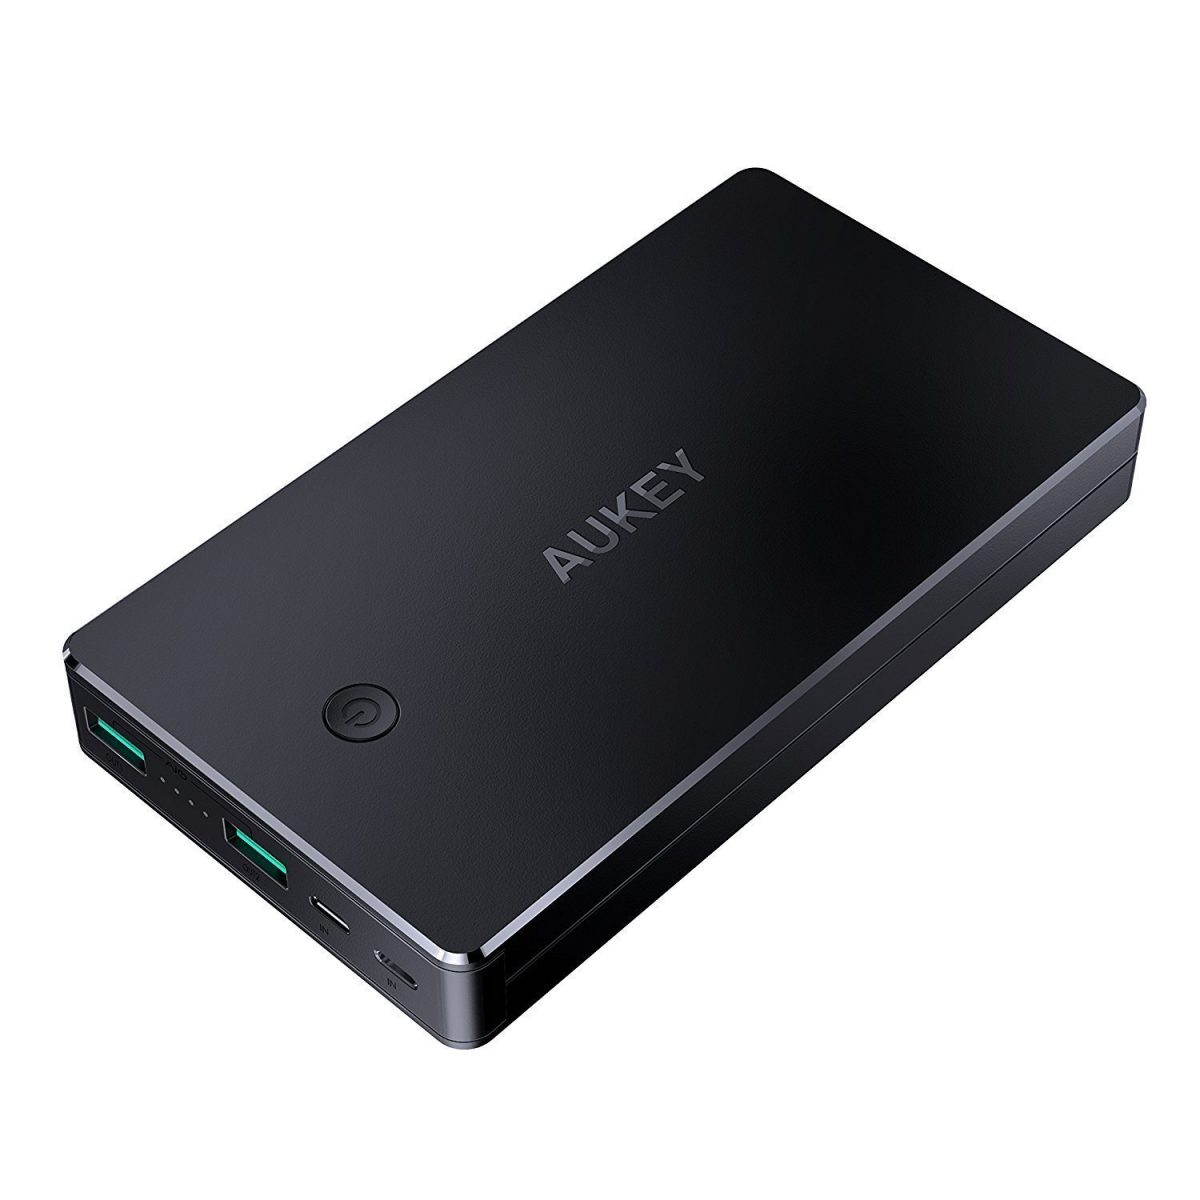 Probamos la Power Bank PB-N36 de Aukey